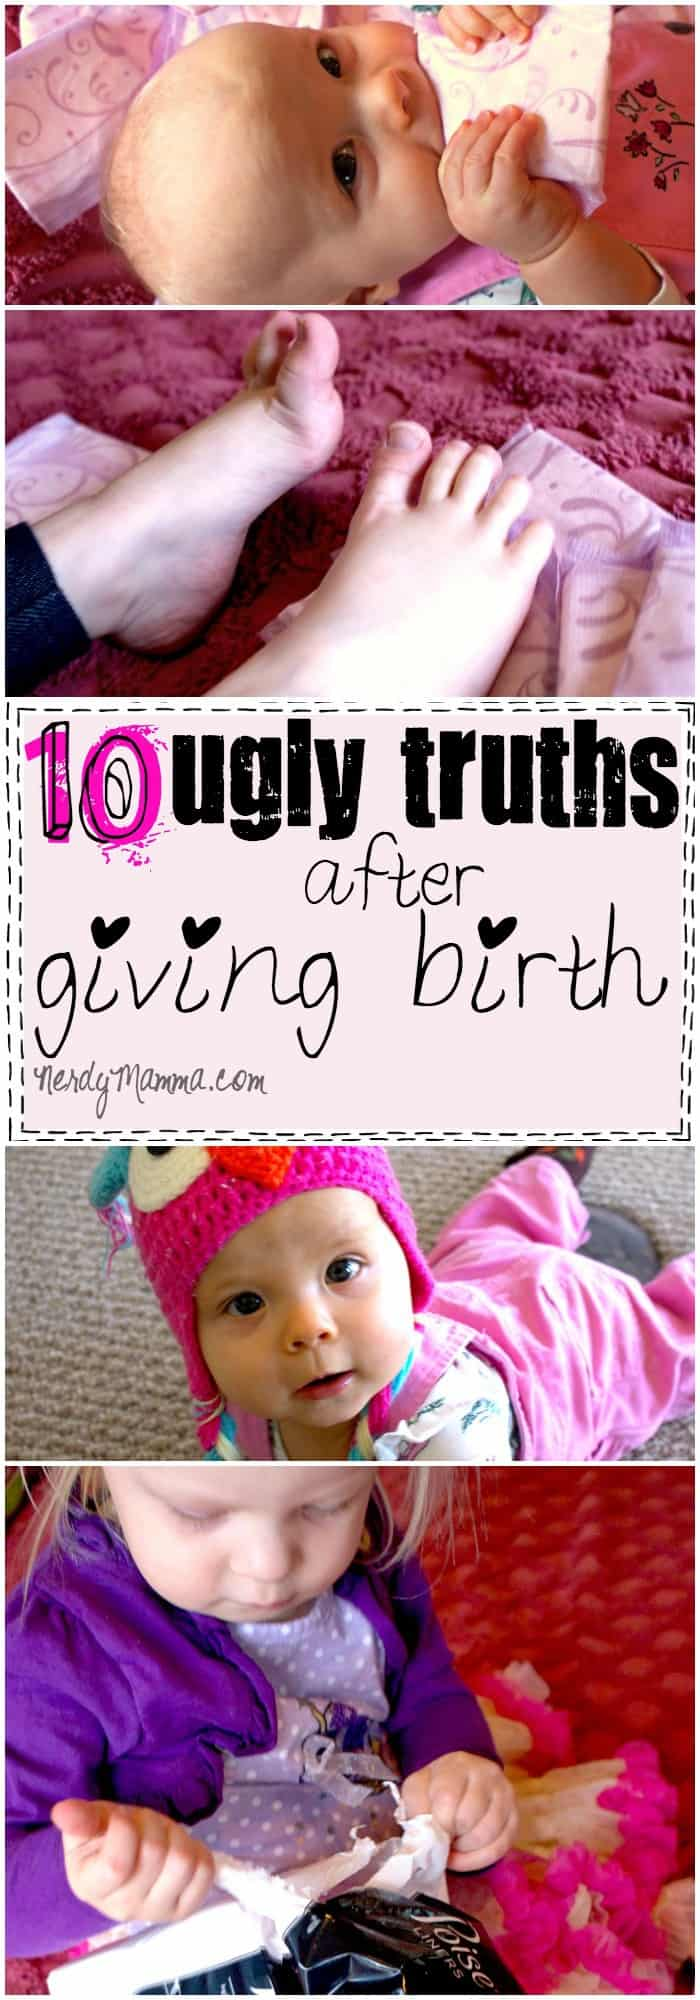 These 10 Ugly Truths After Giving Birth are SO FUNNY. I love parenting humor like this...so true, but sooooo funny! #ad #MyPoiseMoment